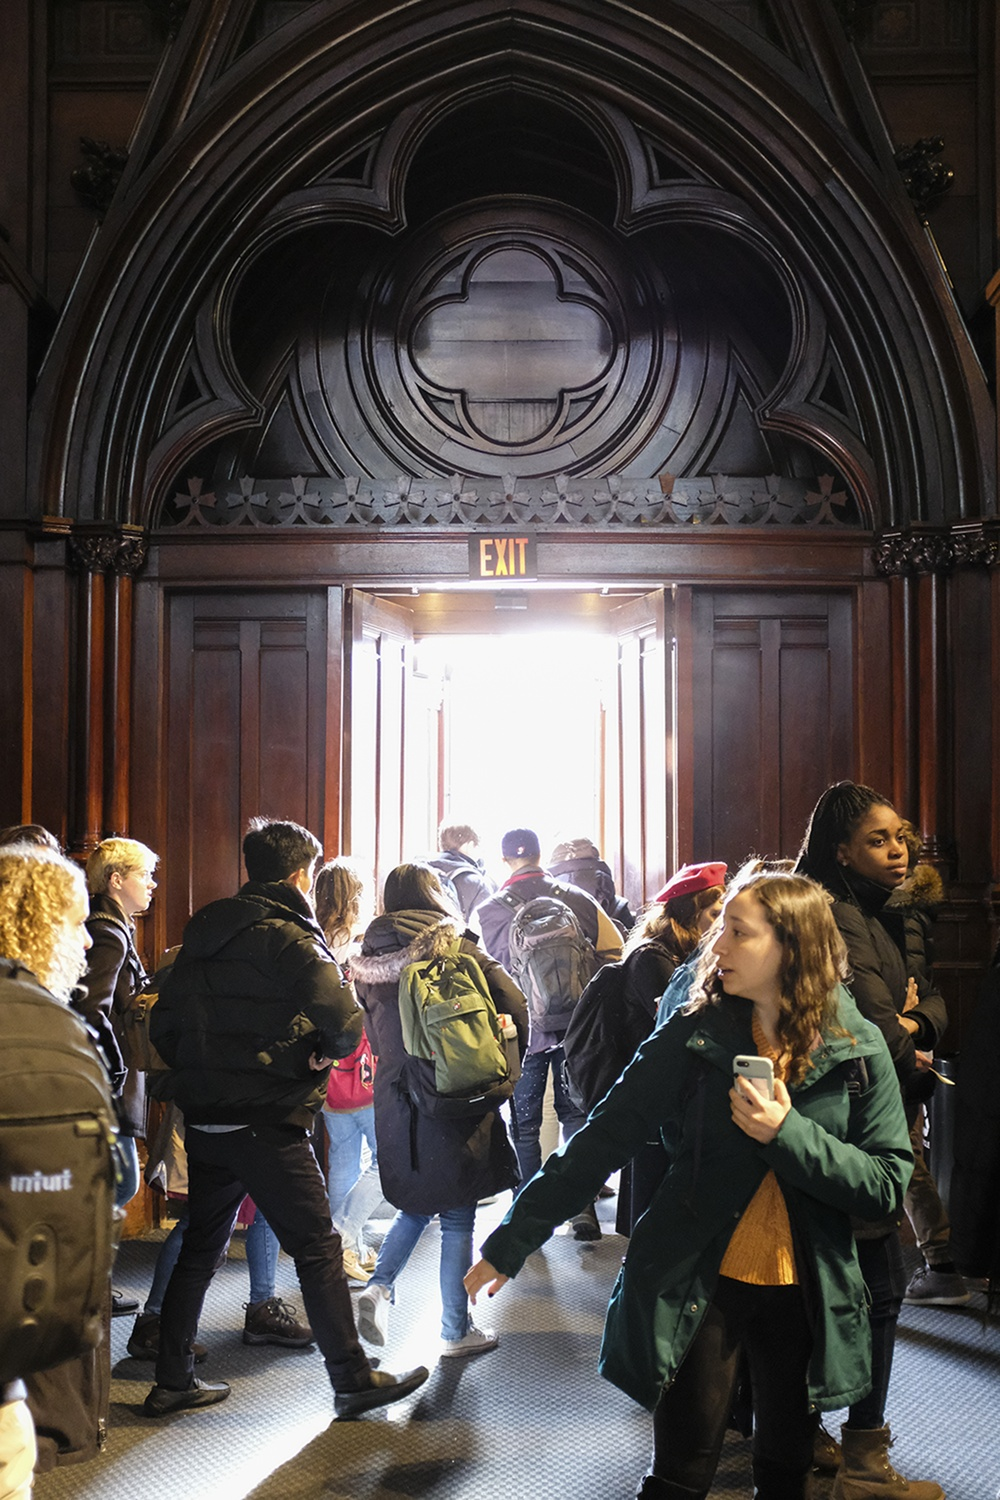 Students file out of Sanders Theater on the first day of Spring classes.